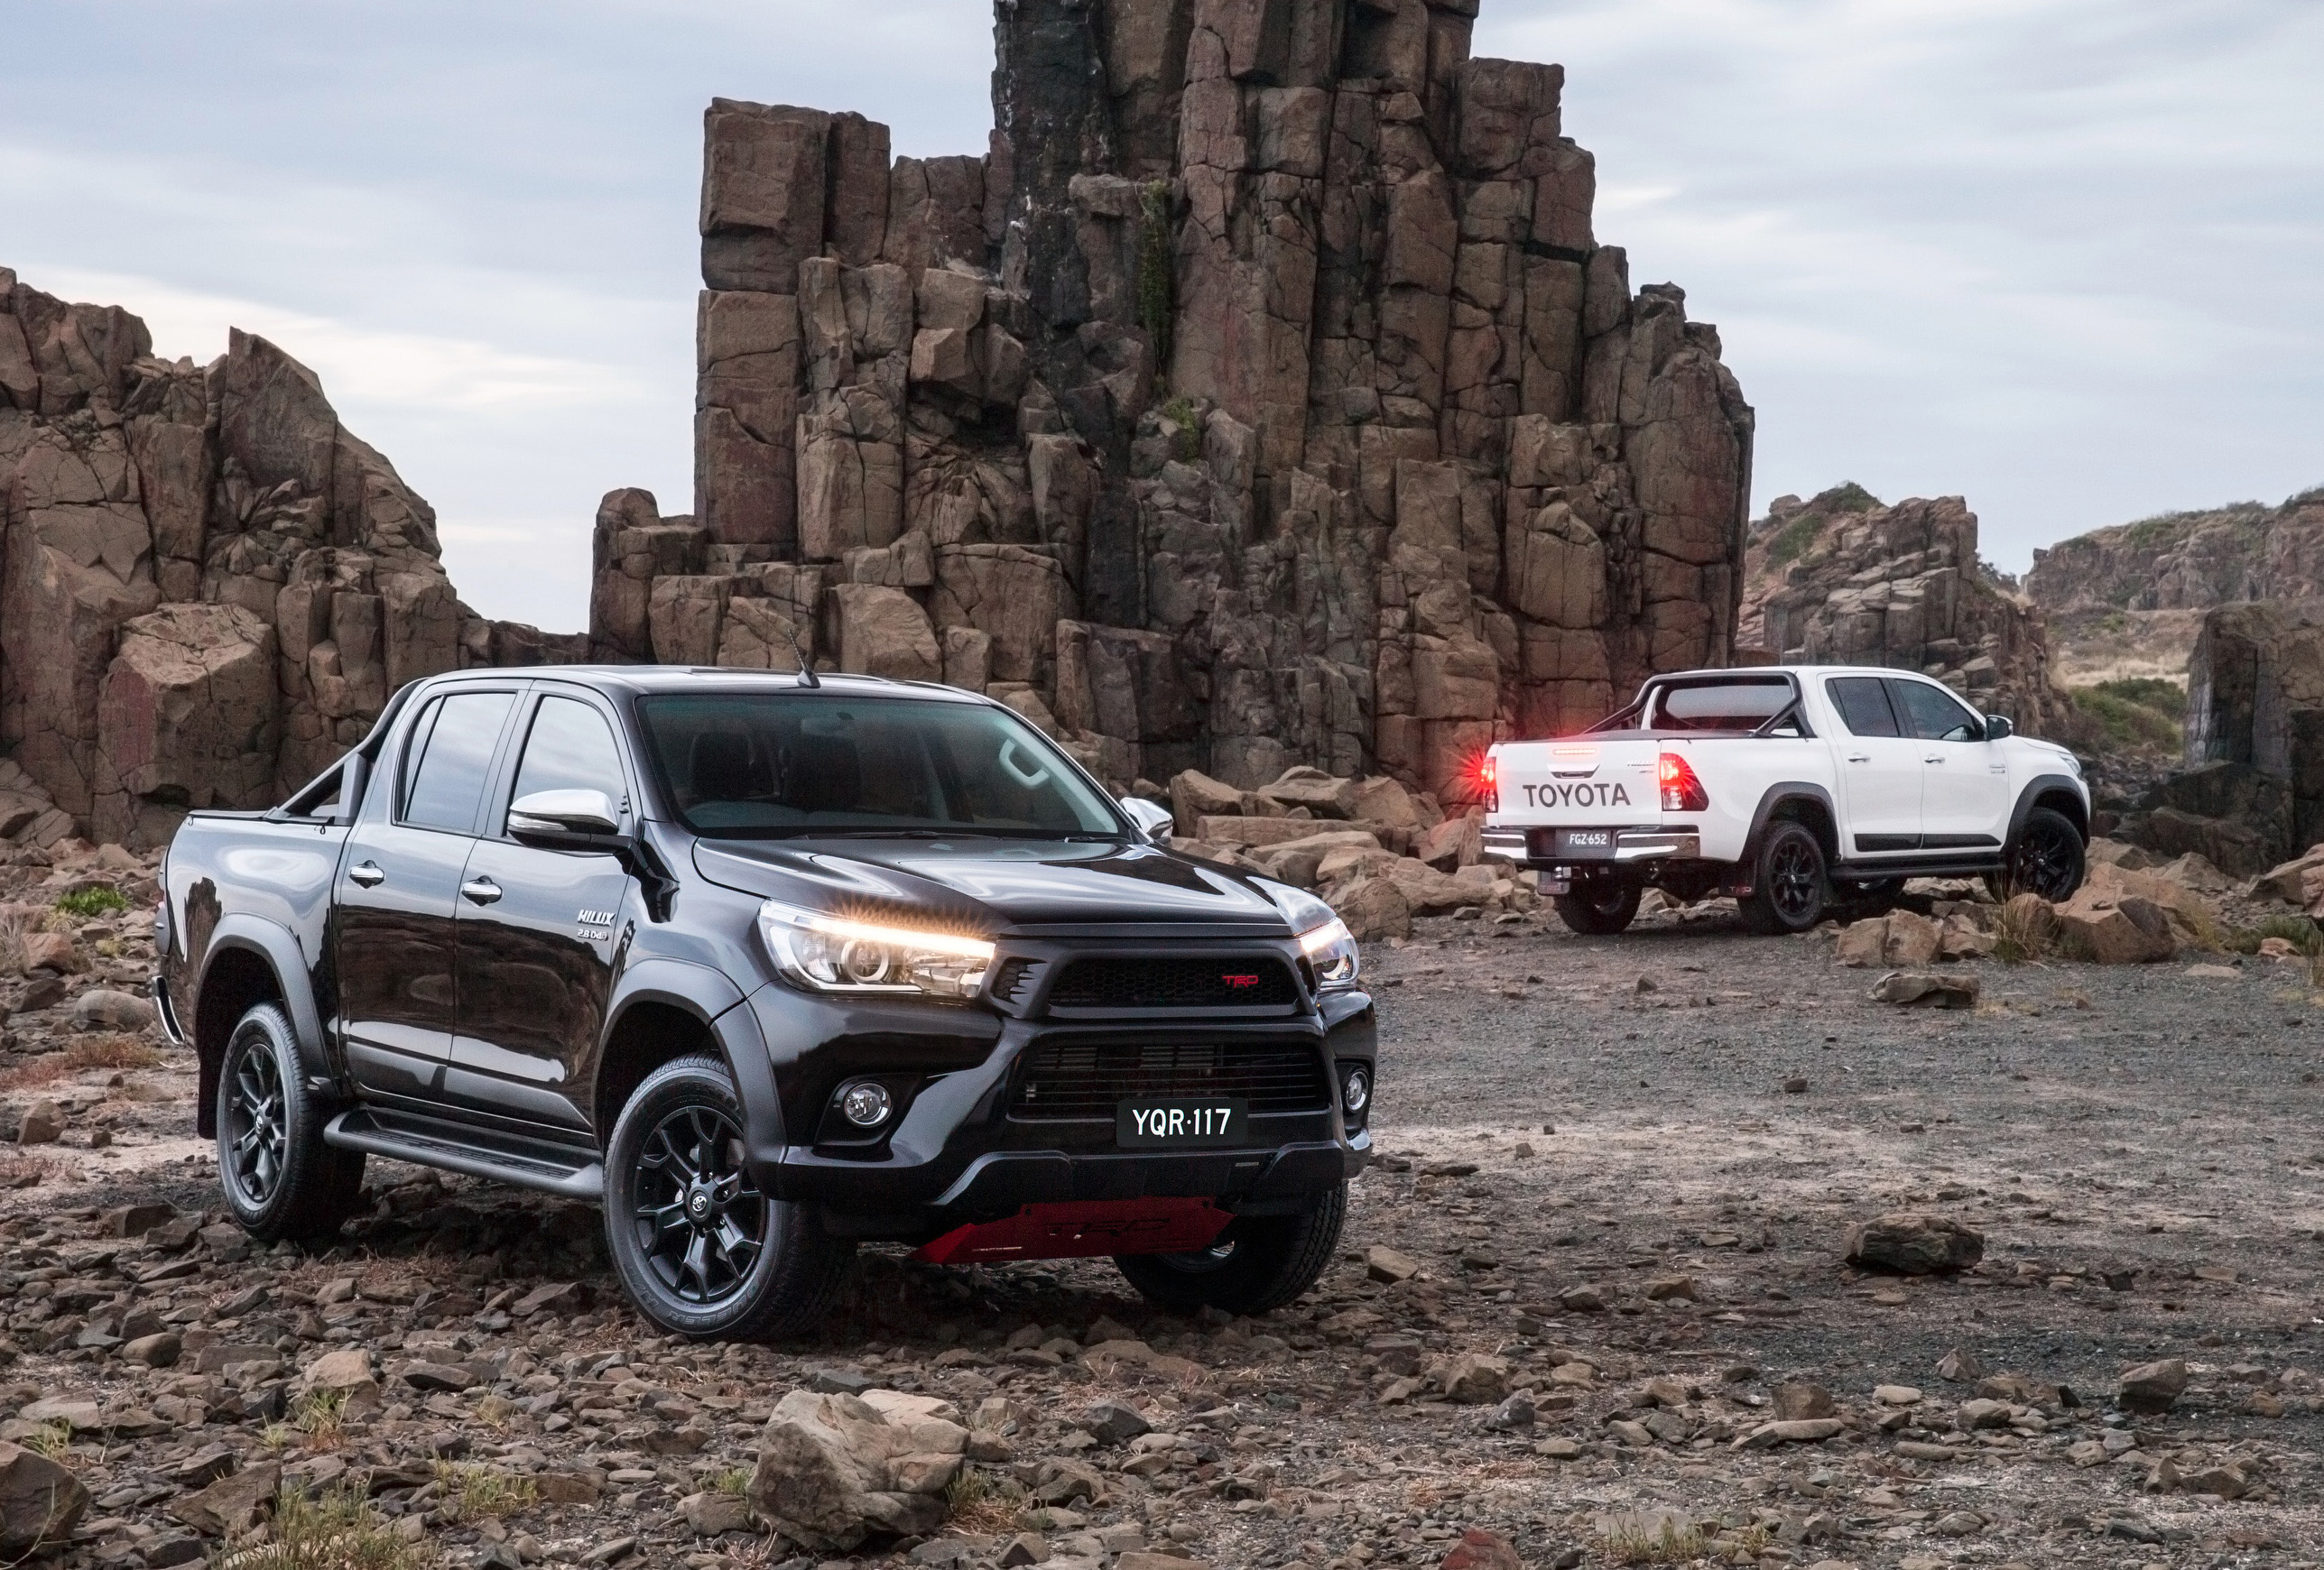 News - Toyota Gives HiLux SR5 The TRD Treatment